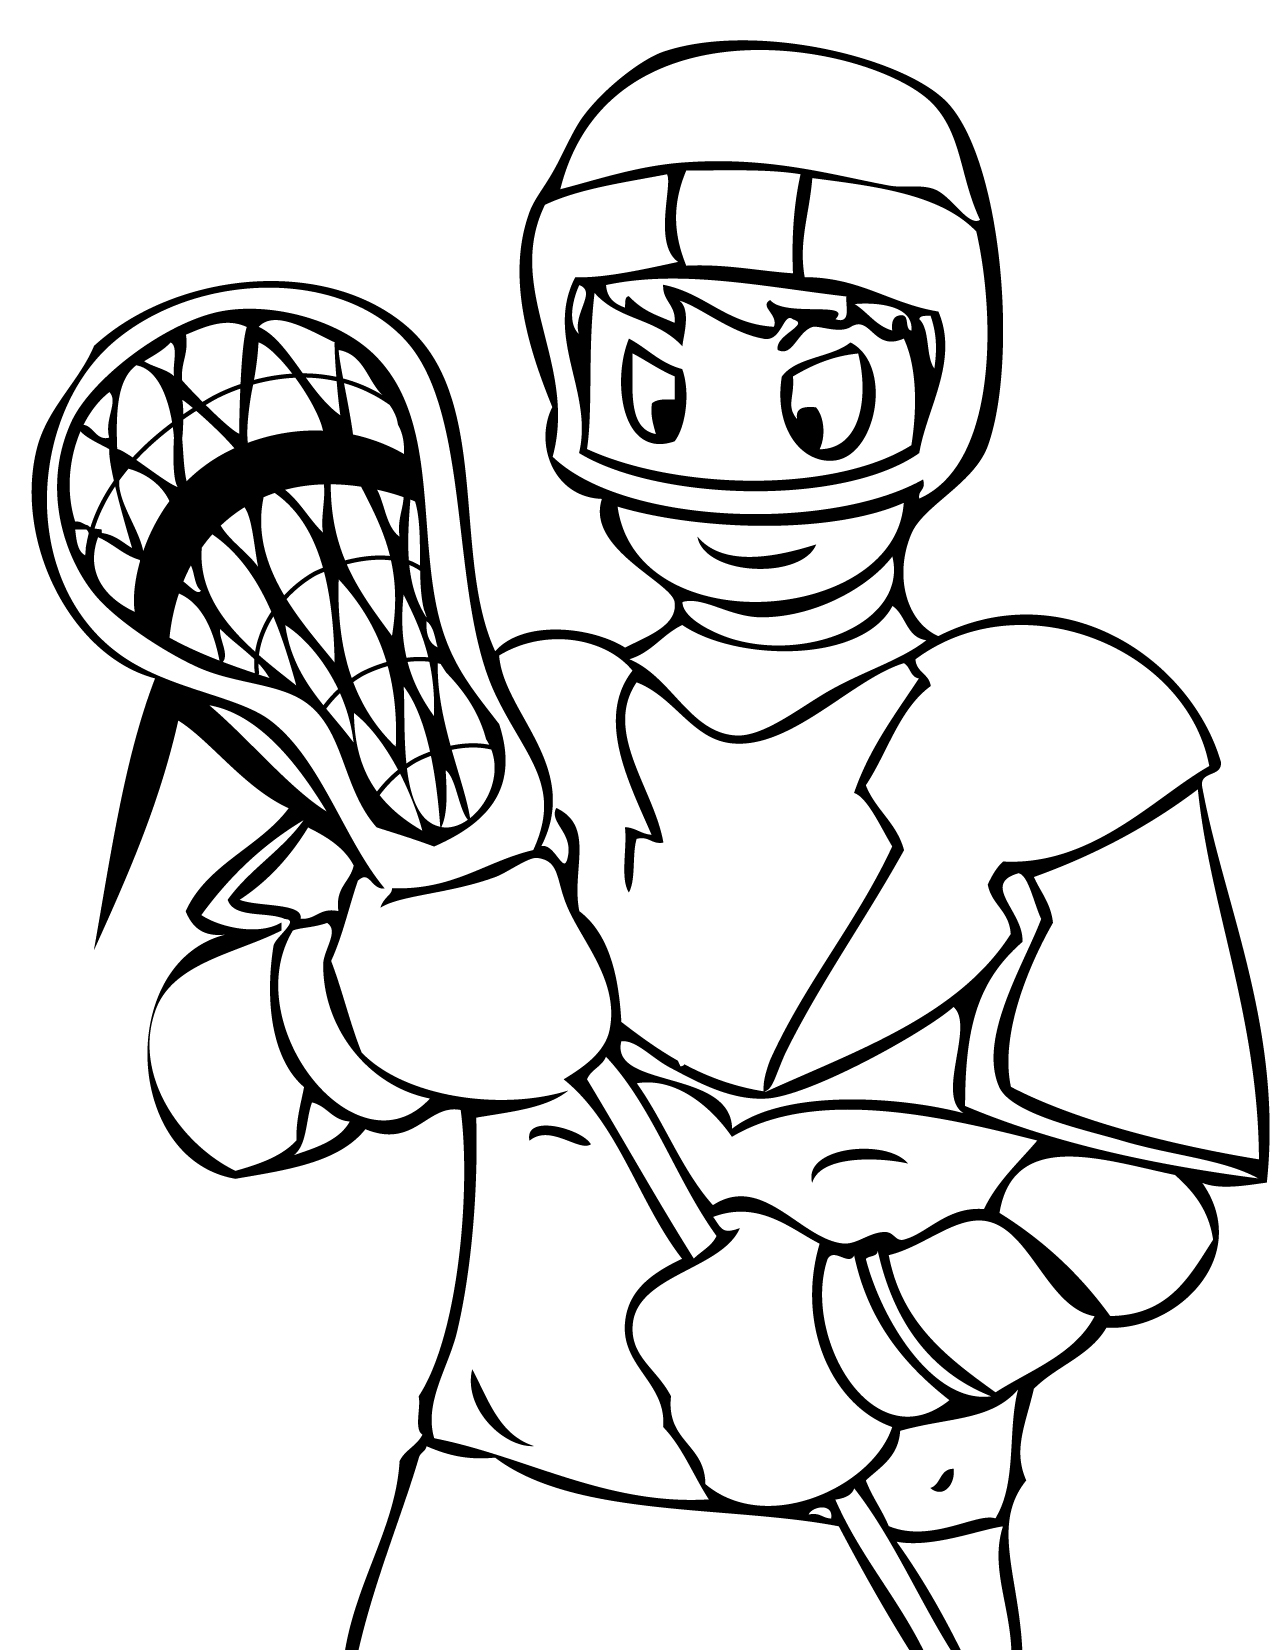 sport pictures to color sport basketball sport coloring pages for kids to print sport color pictures to